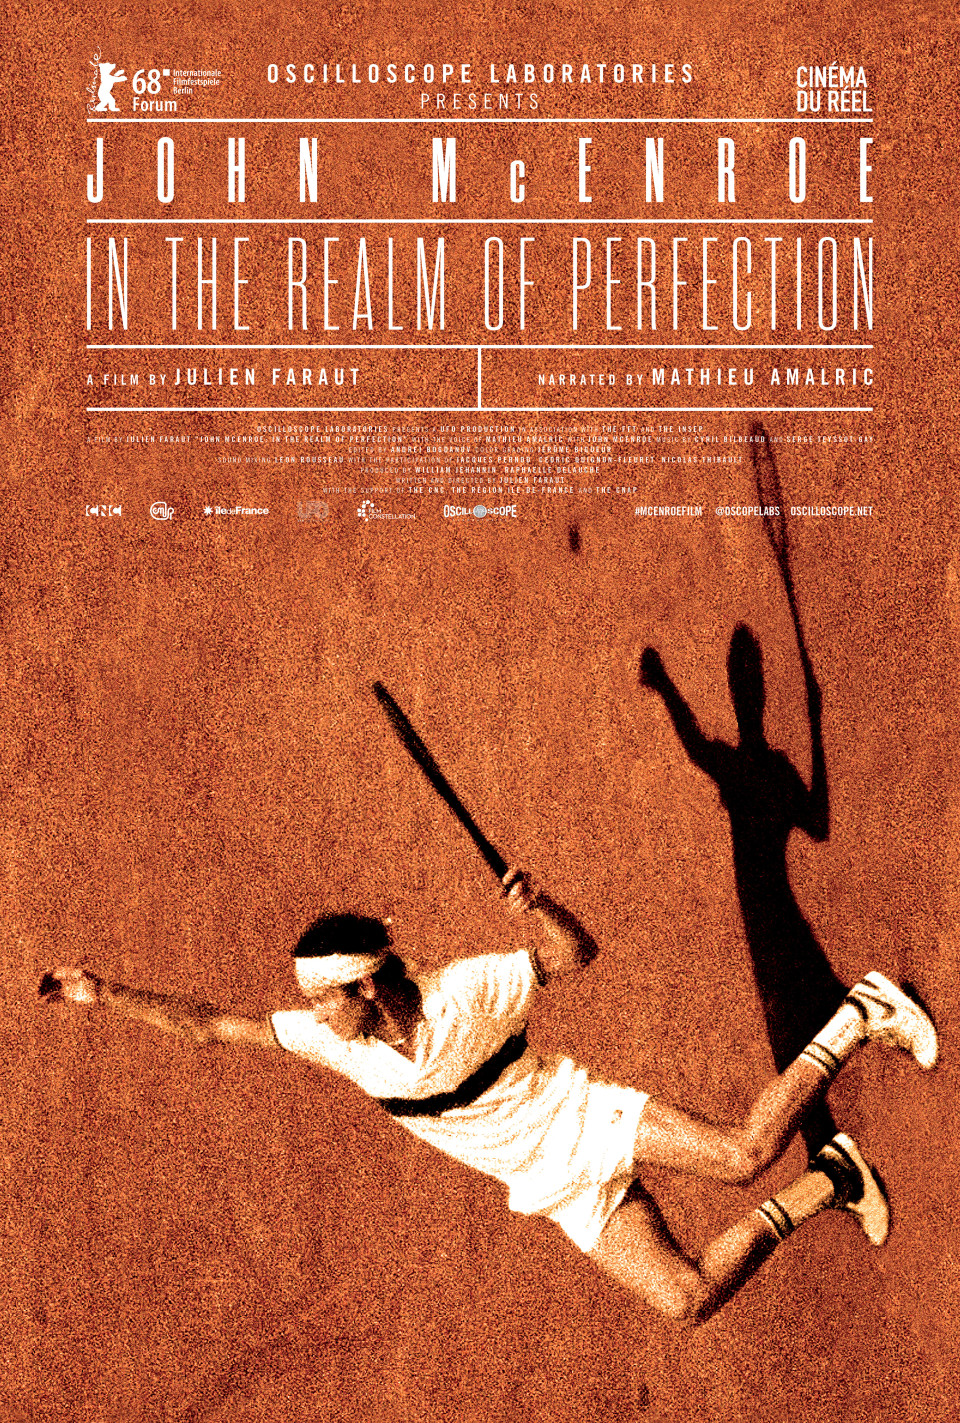 02 - John McEnroe - In The Realm of Perfection